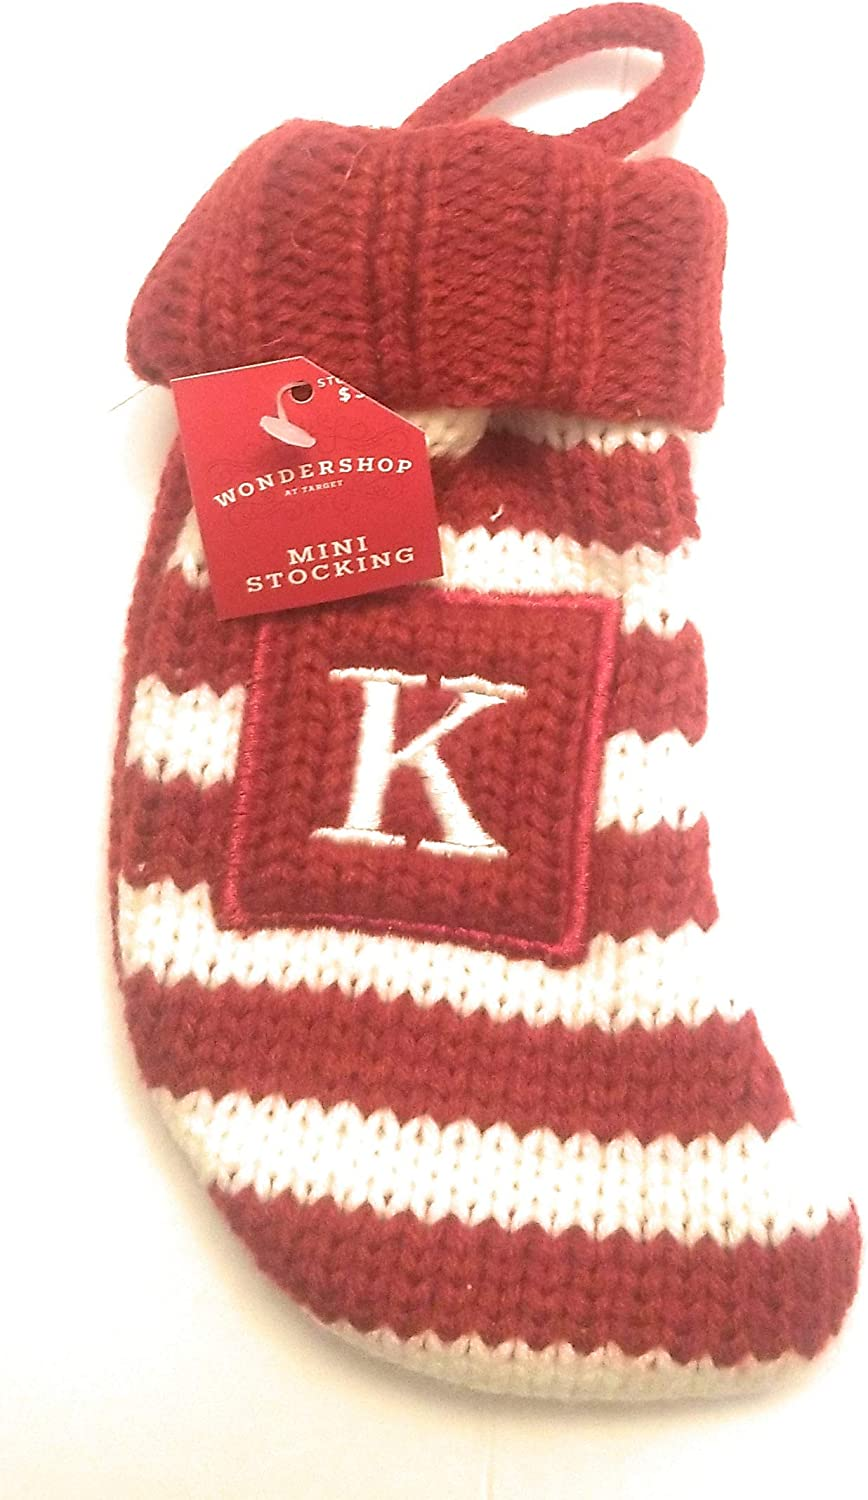 Wondershop Holiday Christmas Knit Mini Stocking Monogram Letter K White & Red Striped Measures 7